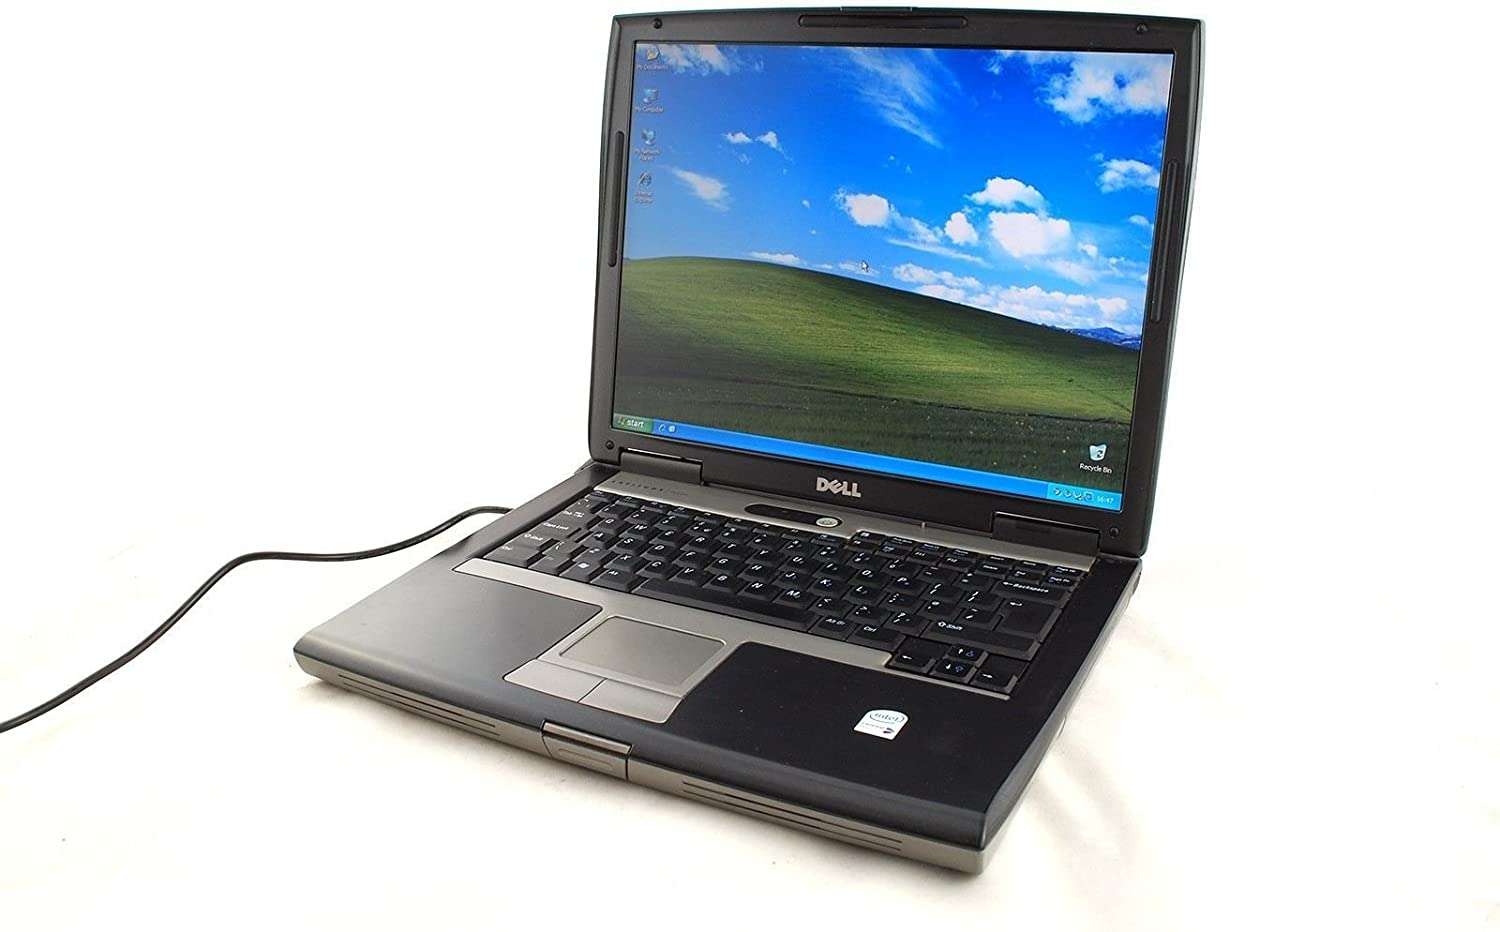 "Dell Latitude D520 1.66Ghz/1GB/60GB/Win XP Pro/15"" Notebook"